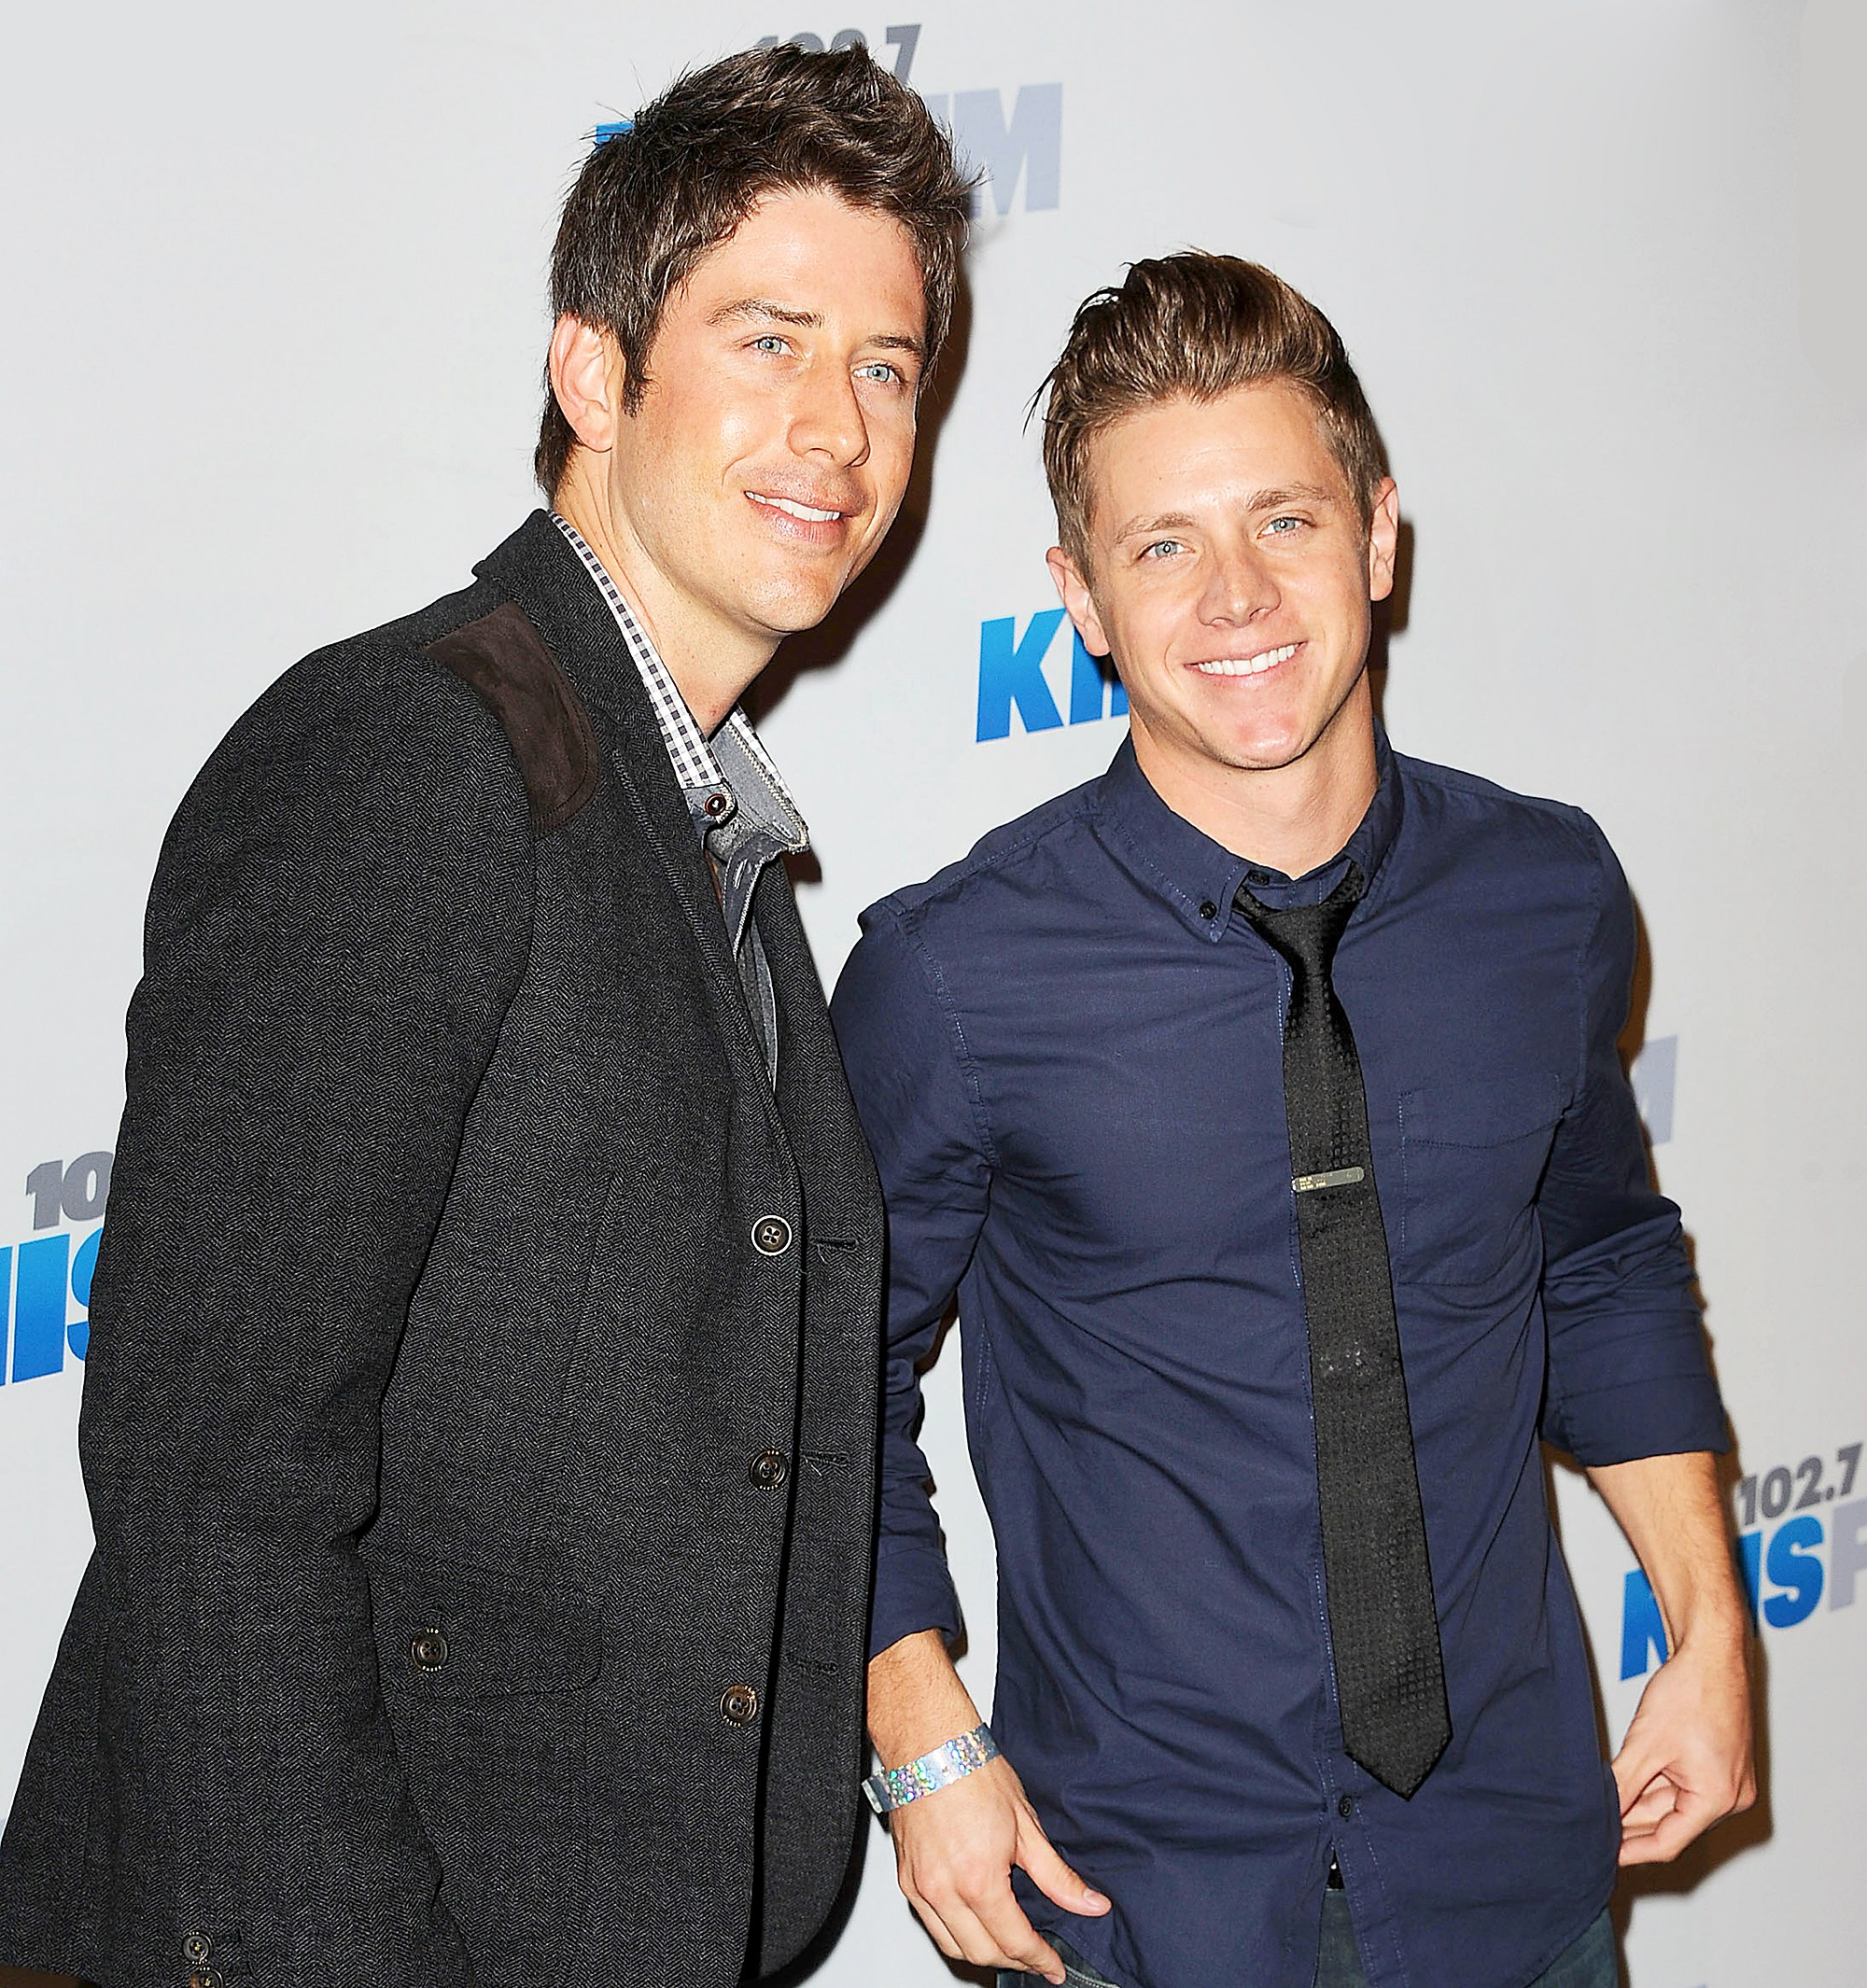 Arie Luyendyk Jr. and Jef Holm attend KIIS FM's Jingle Ball 2012 at Nokia Theatre LA Live in Los Angeles, California.